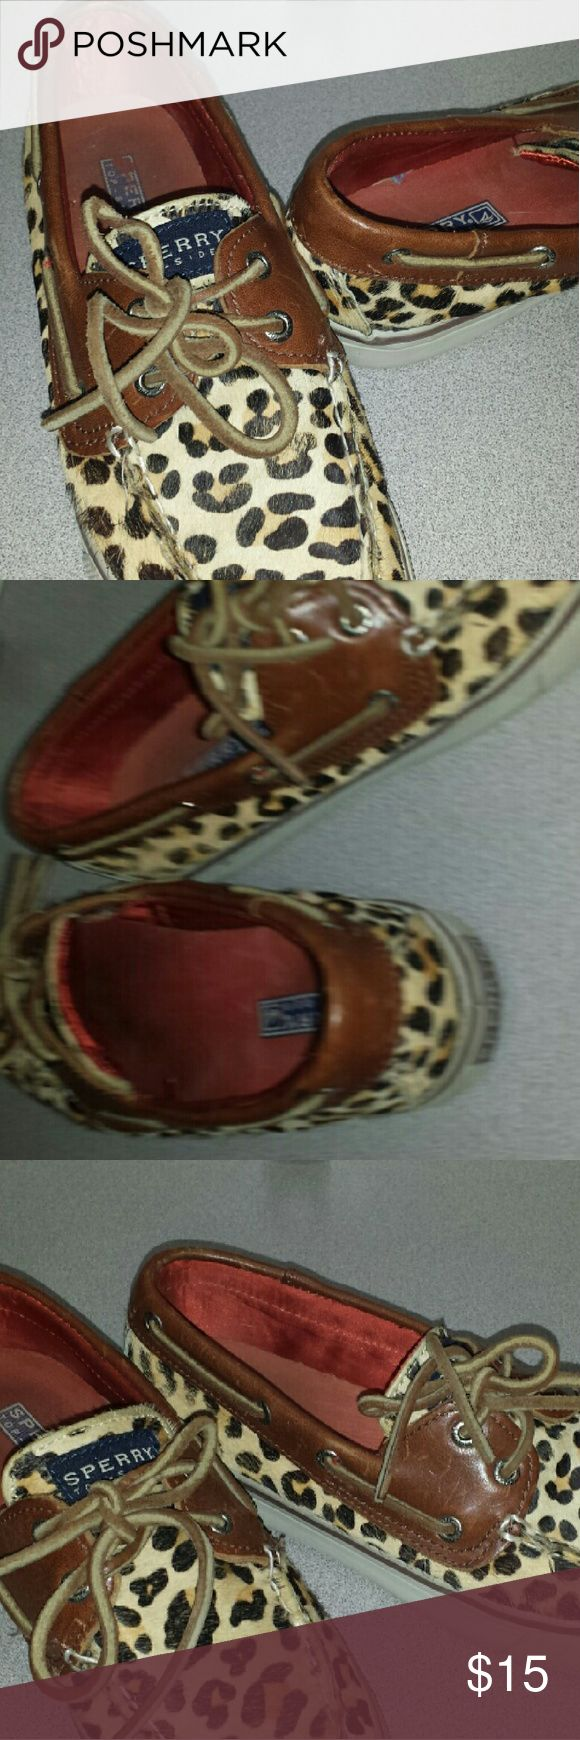 Sperry shoes Leopard sperry size 6 gentle used but In very good condition. Sperry Top-Sider Shoes Sneakers